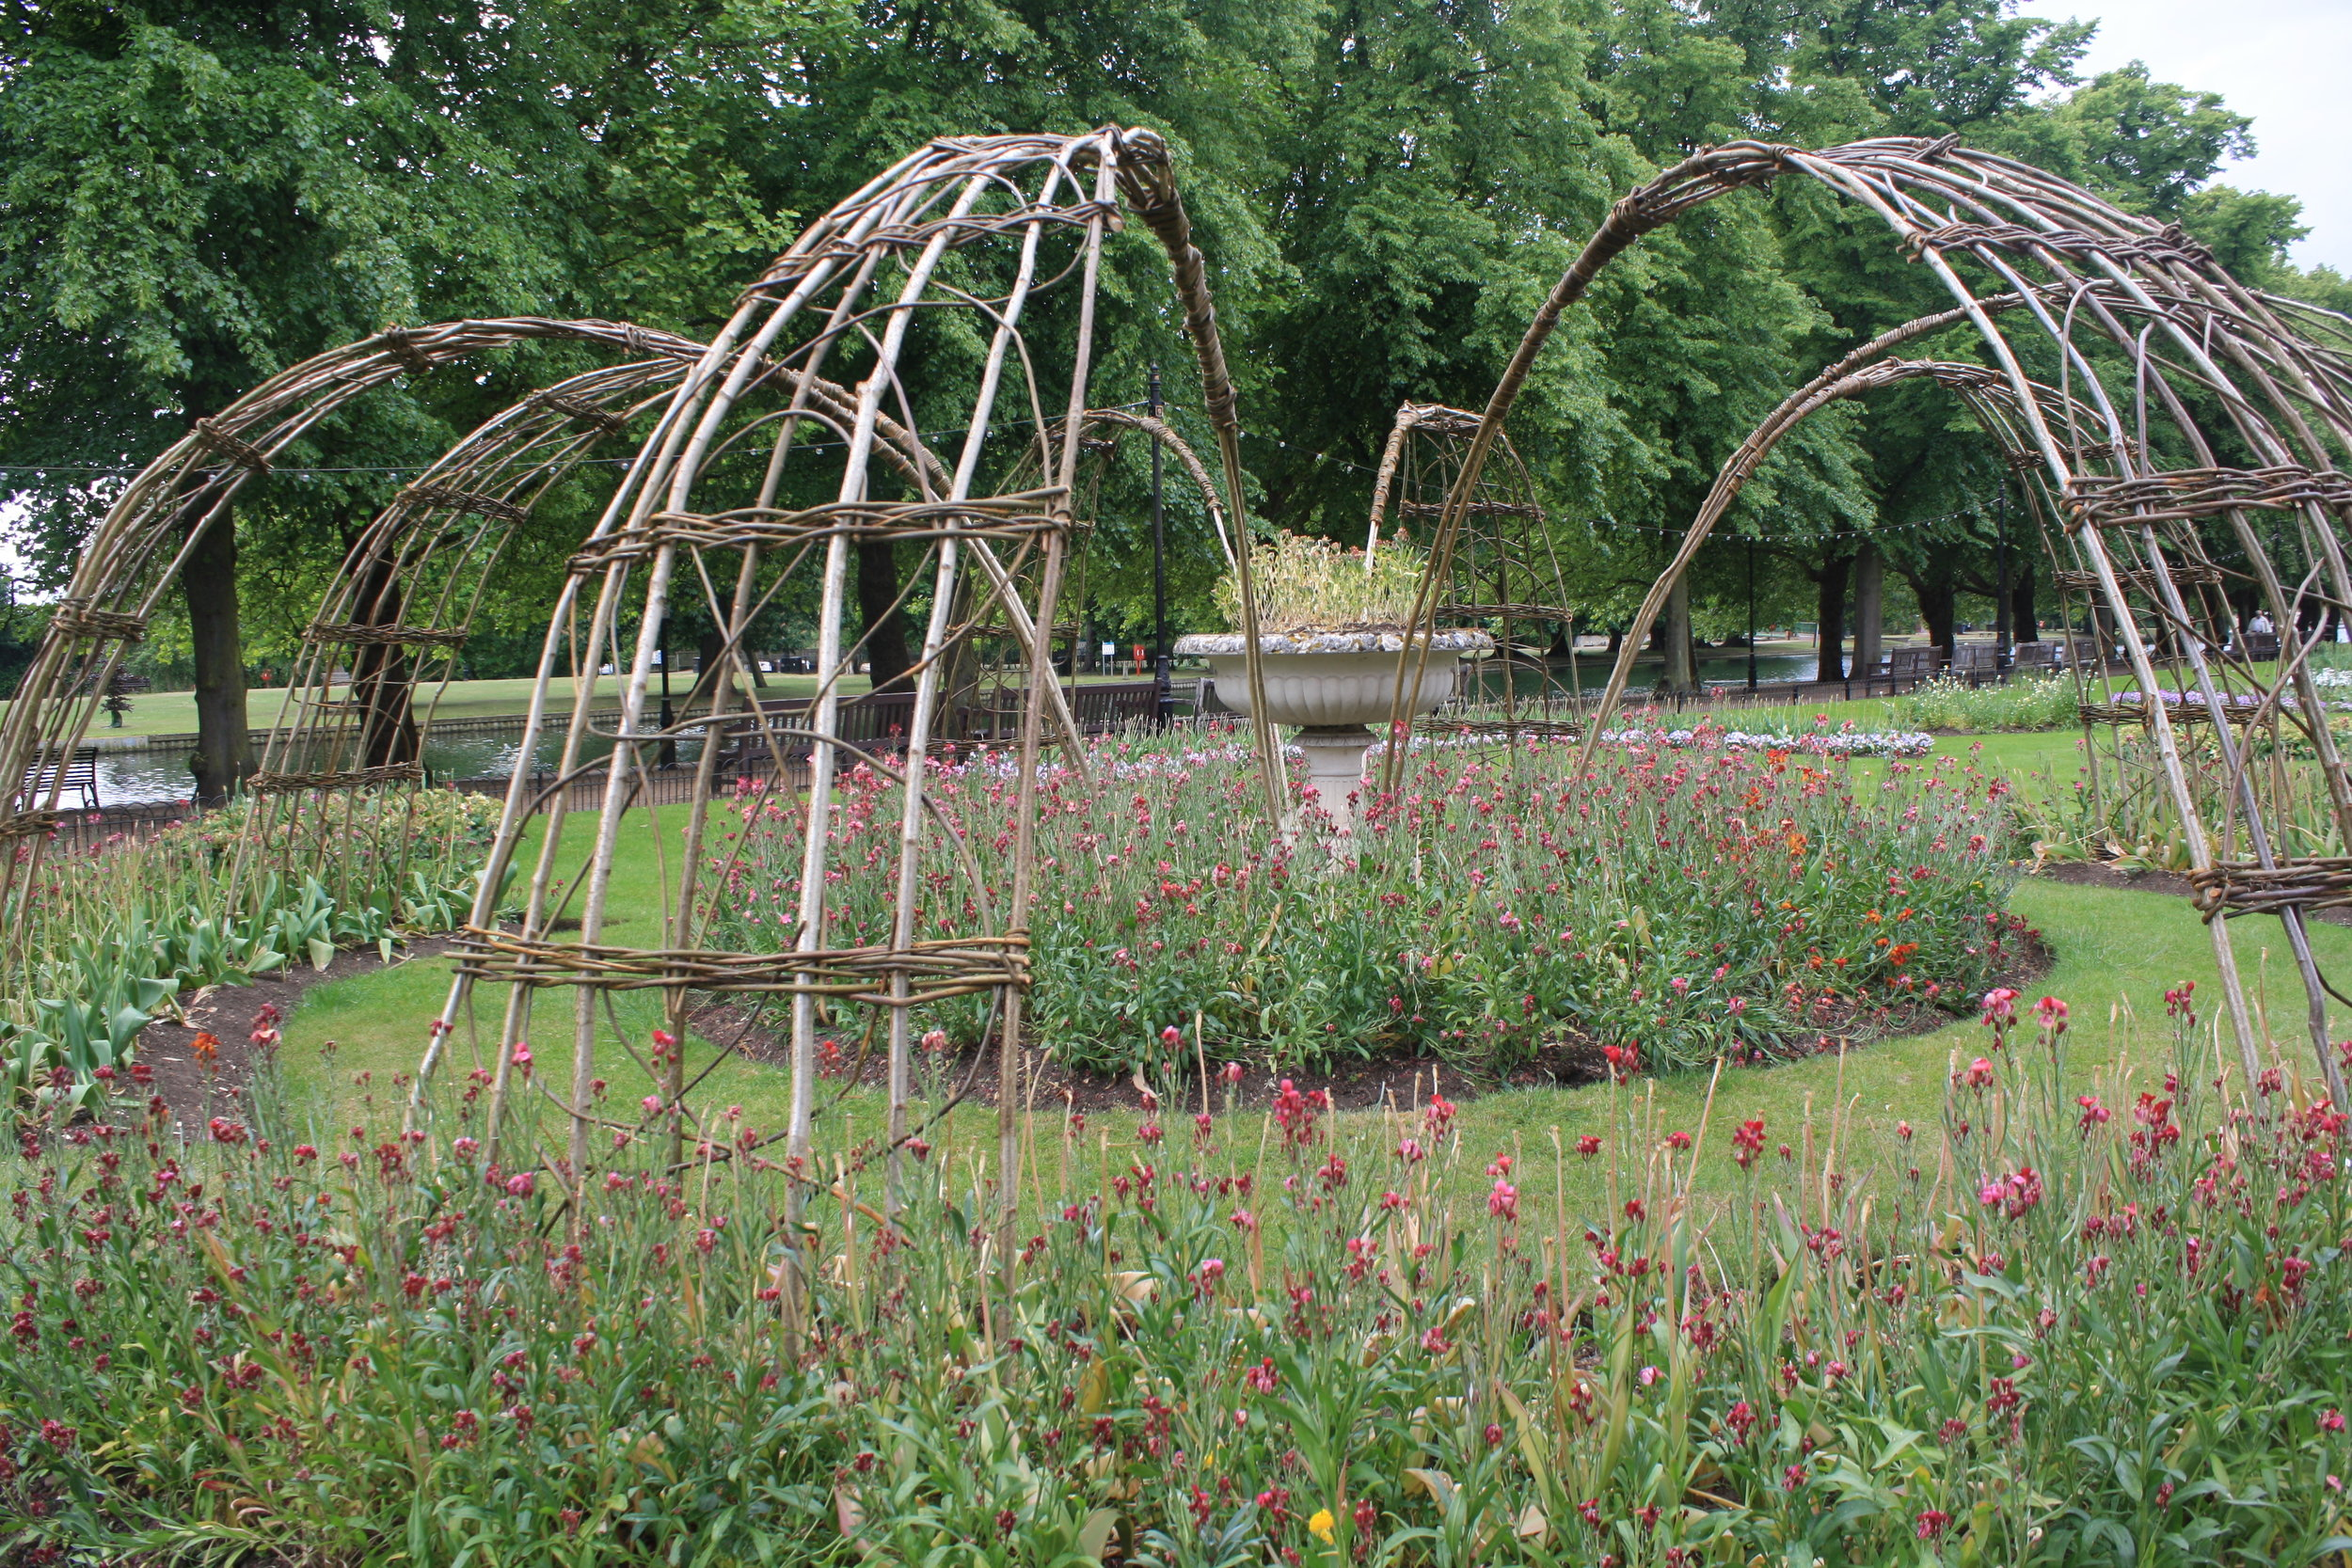 Woven willow sculpture